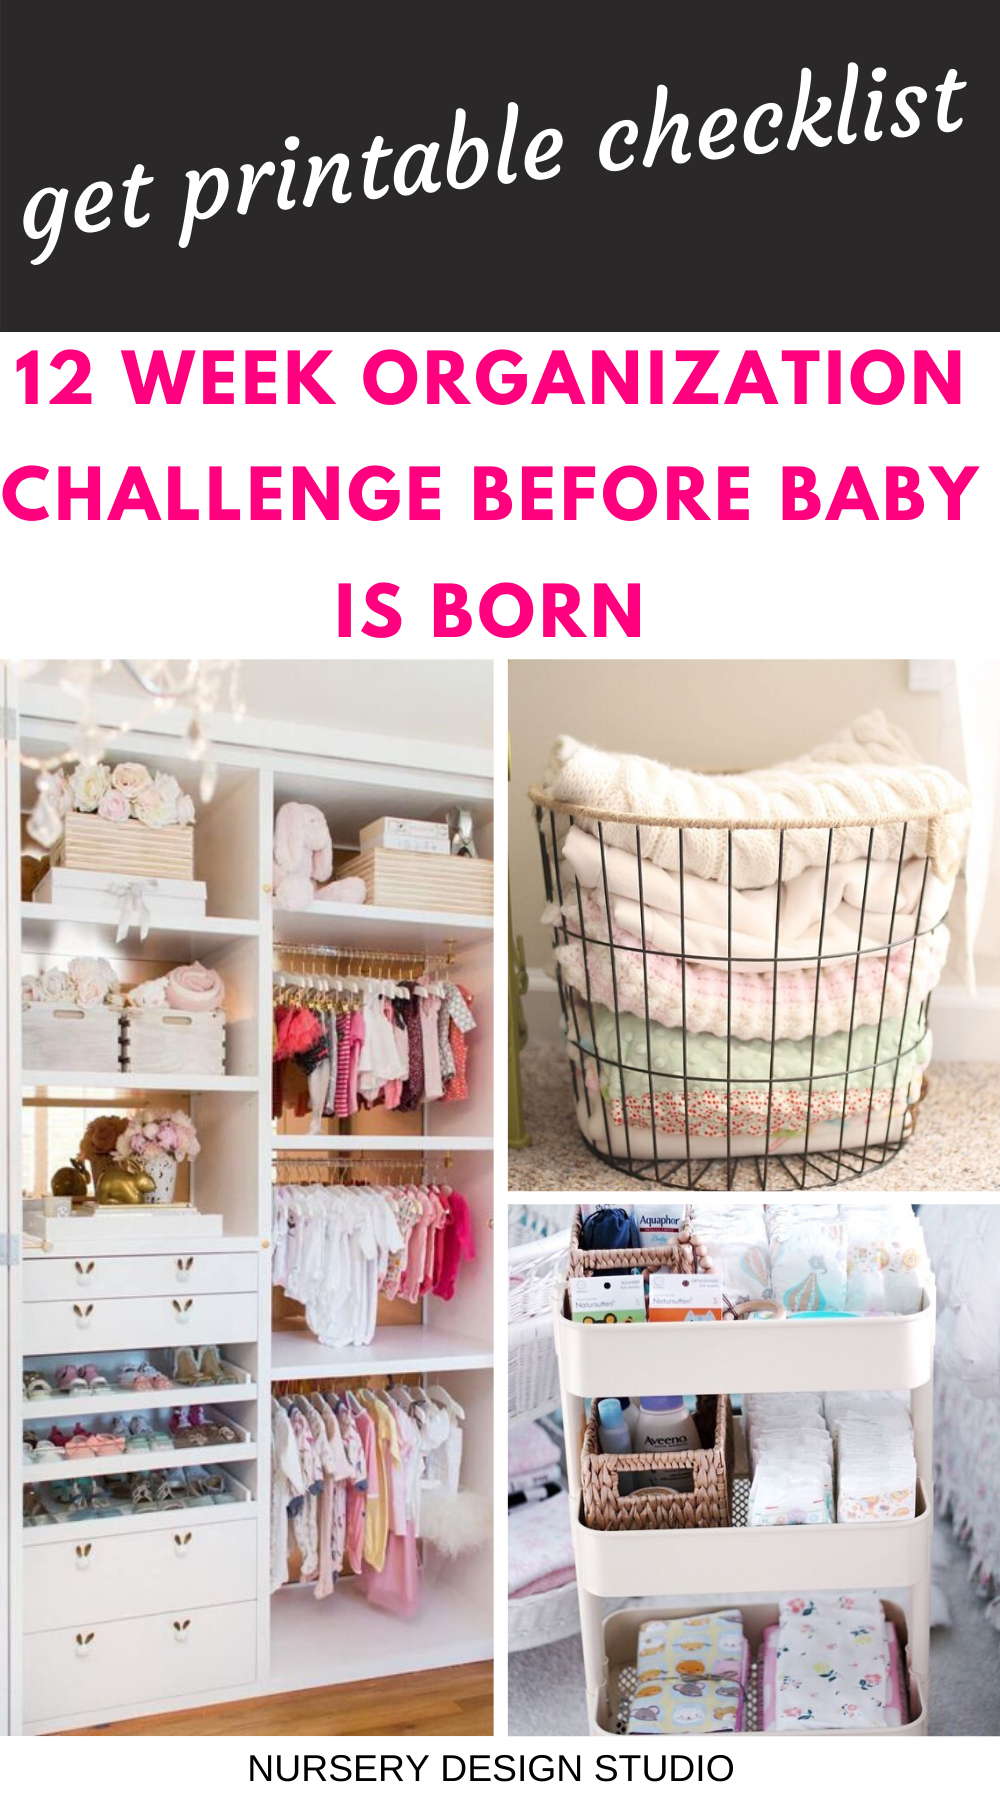 12 WEEK PRINTABLE CHECKLIST FOR 12 WEEK ORGANIZATION CHALLENGE BEFORE BABY